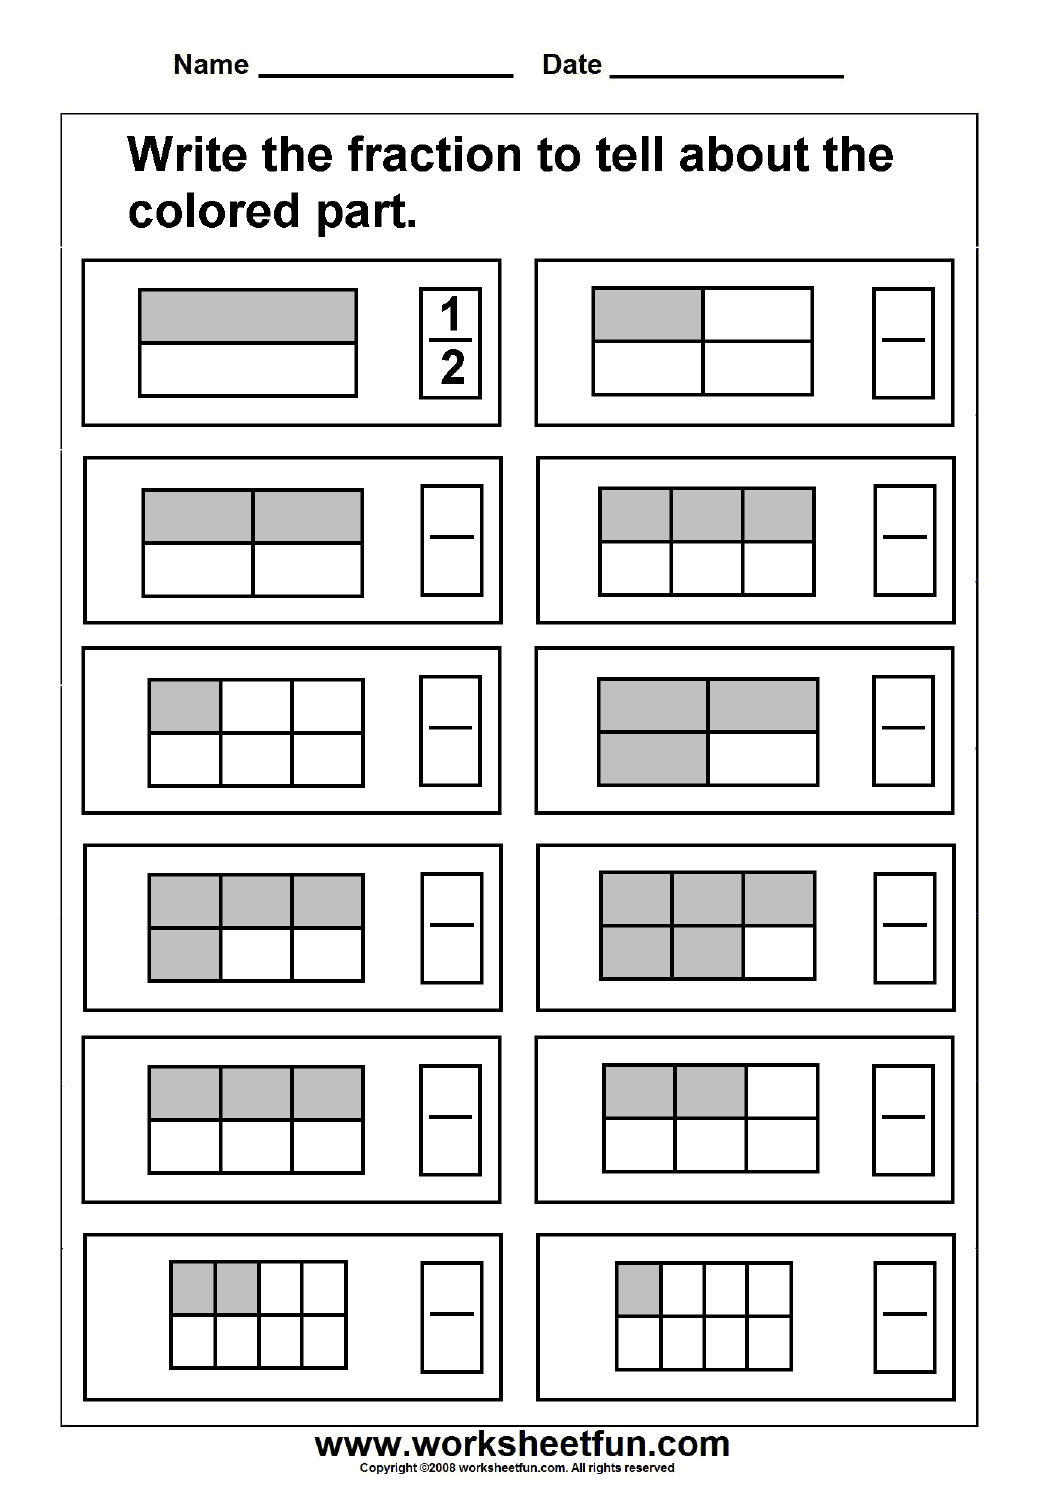 Worksheet Fractions Worksheet fraction free printable worksheets worksheetfun model 3 worksheets